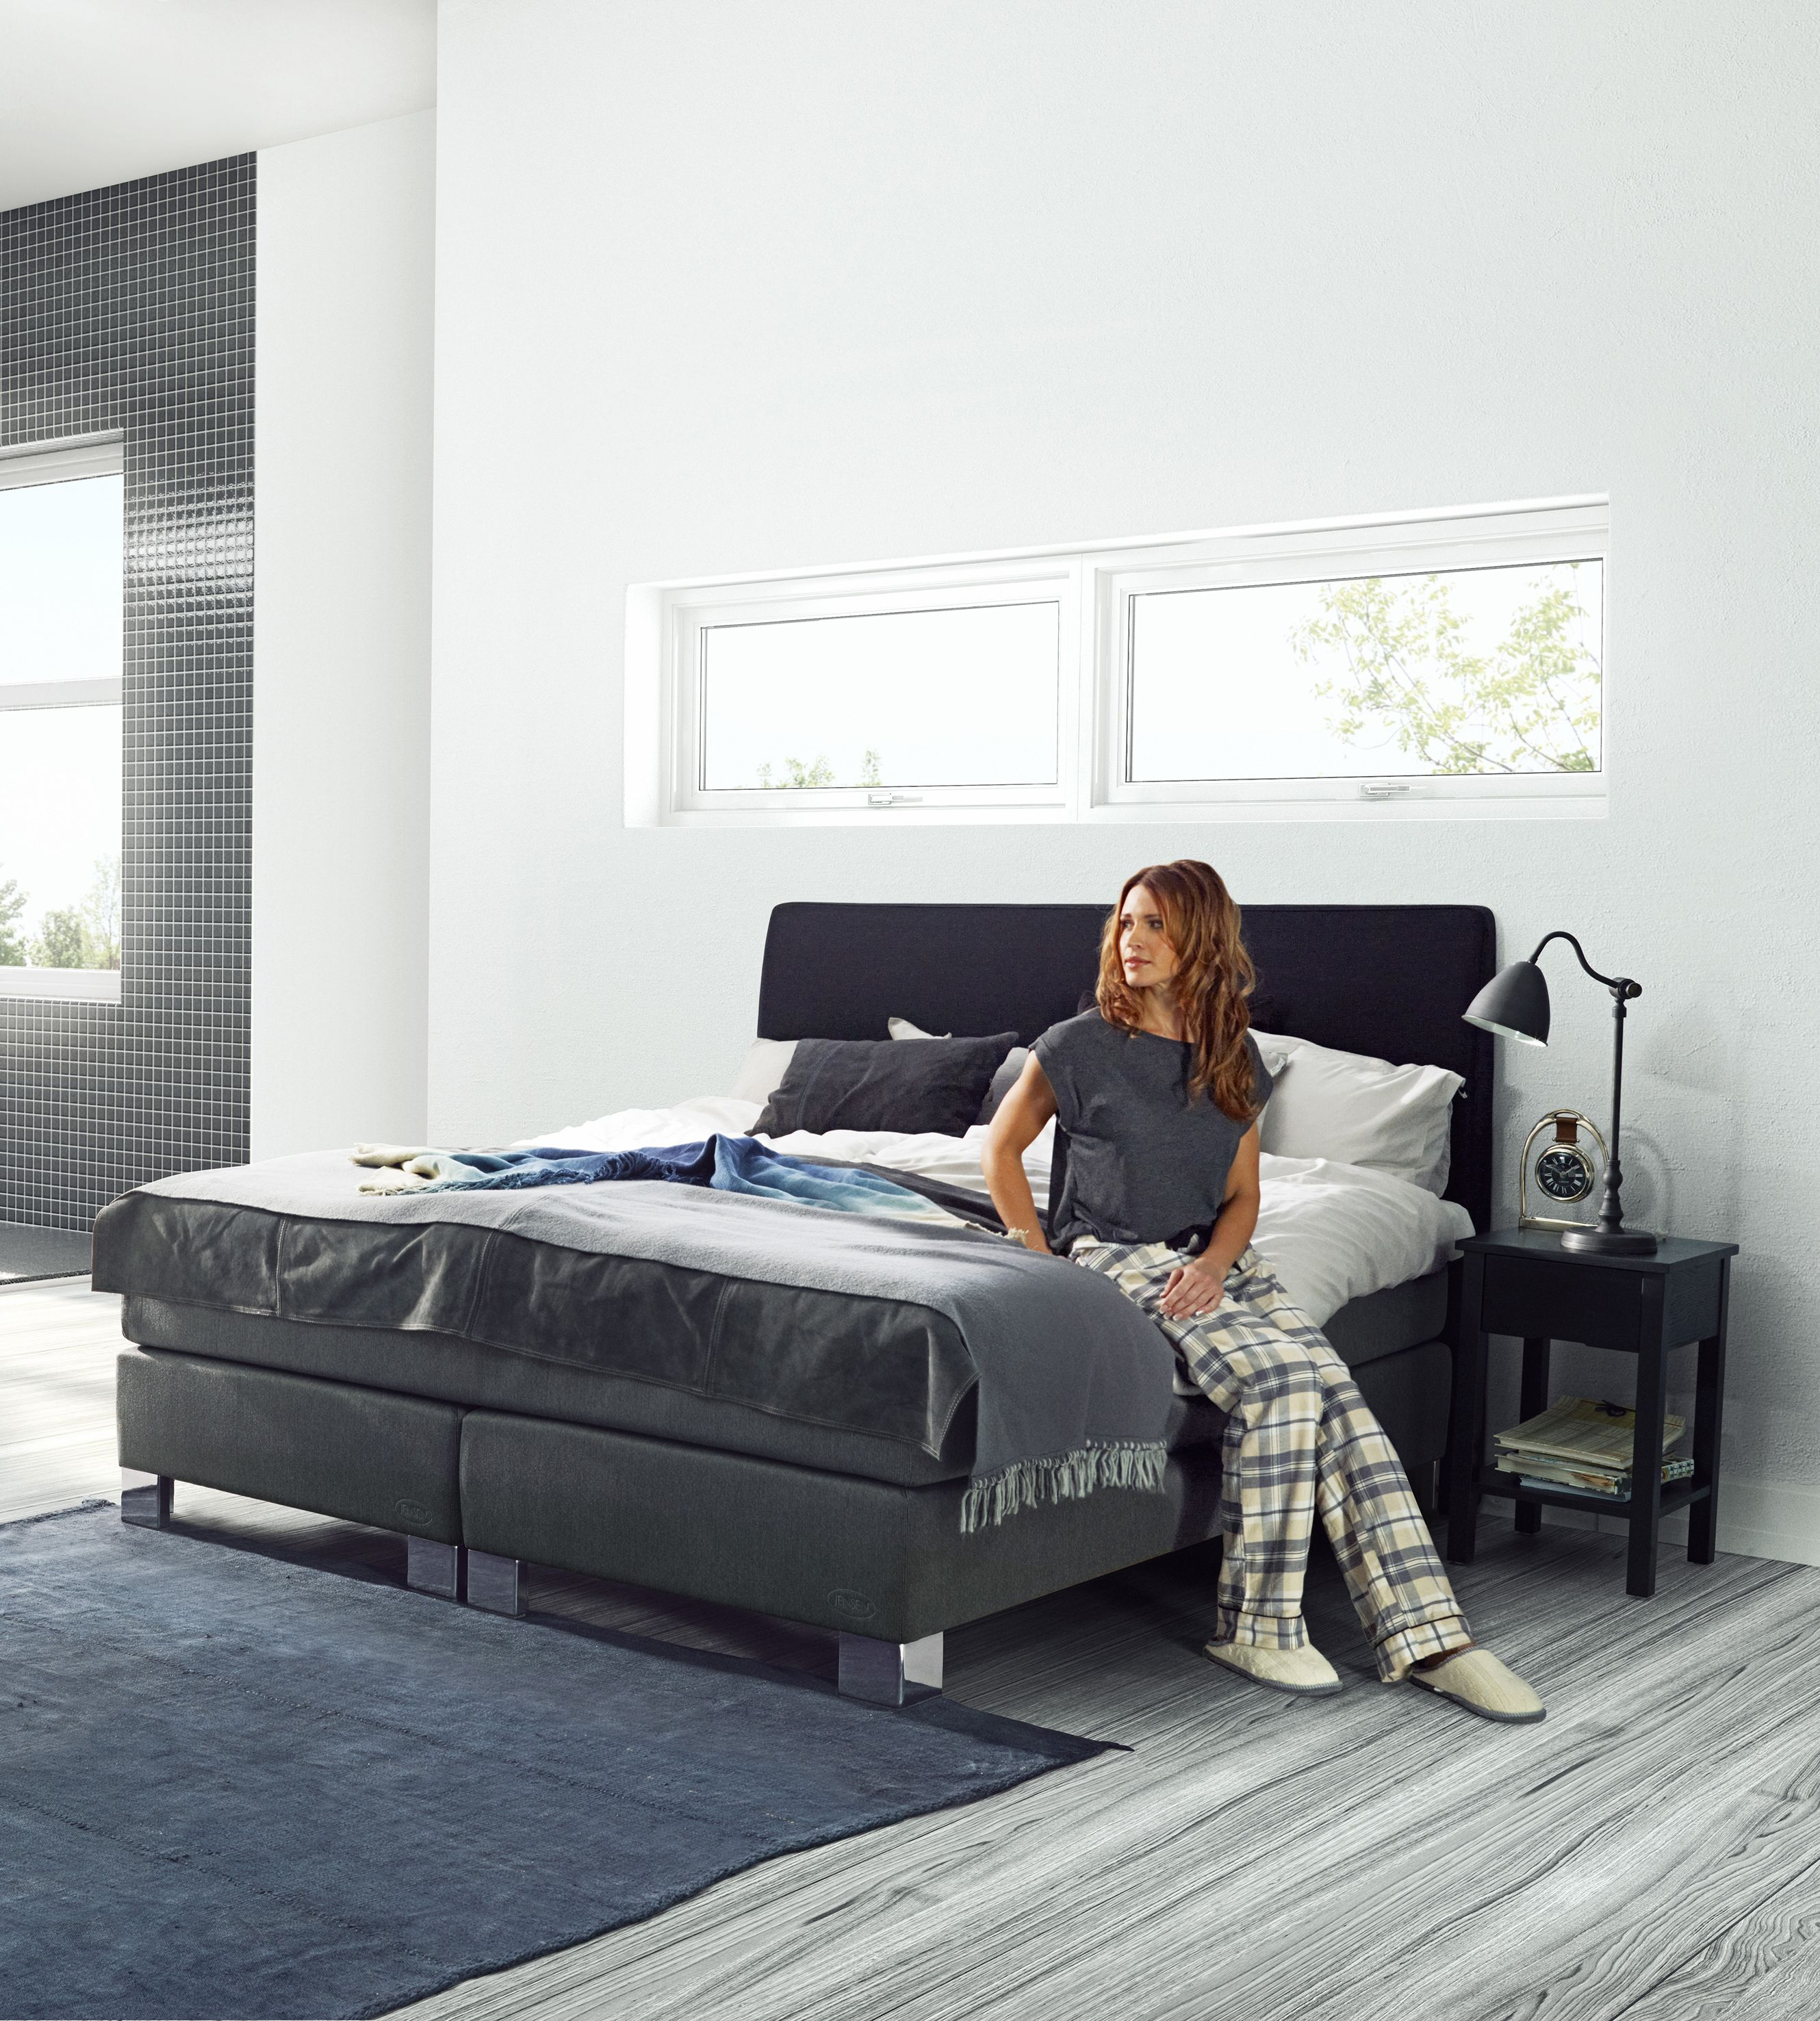 Jensen Opal continental bed in Anthracite textiles. | BEDROOM ...